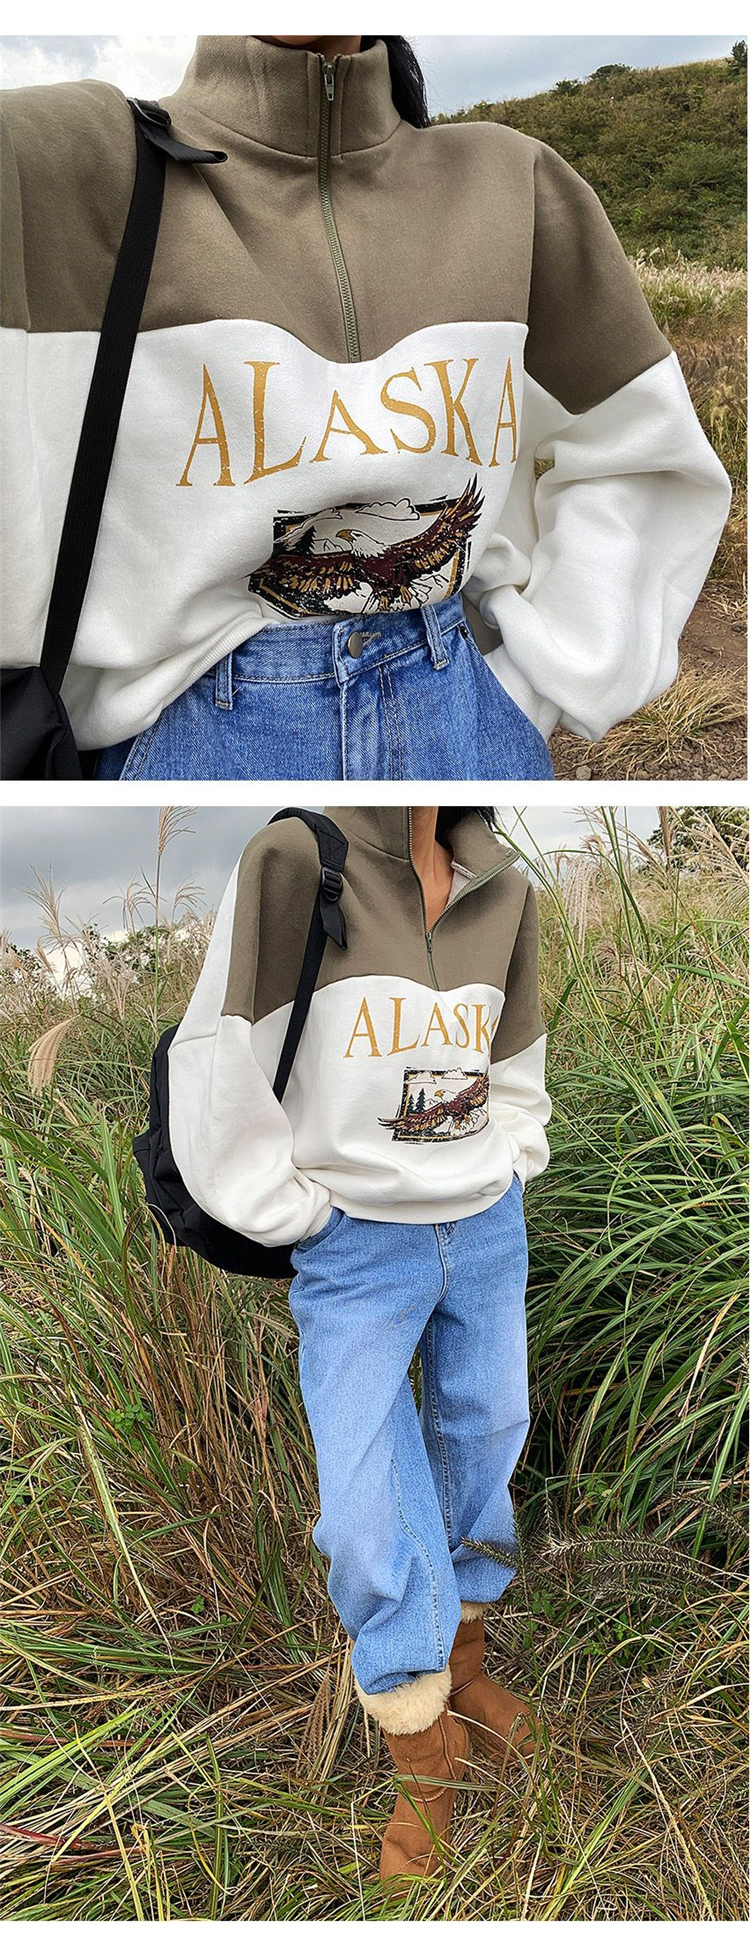 2021 Spring Women Sweatshirts Vintage Streetwear Letter Printed Hoodies Women Back To The Basics Loose Sweatshirt with Fleece